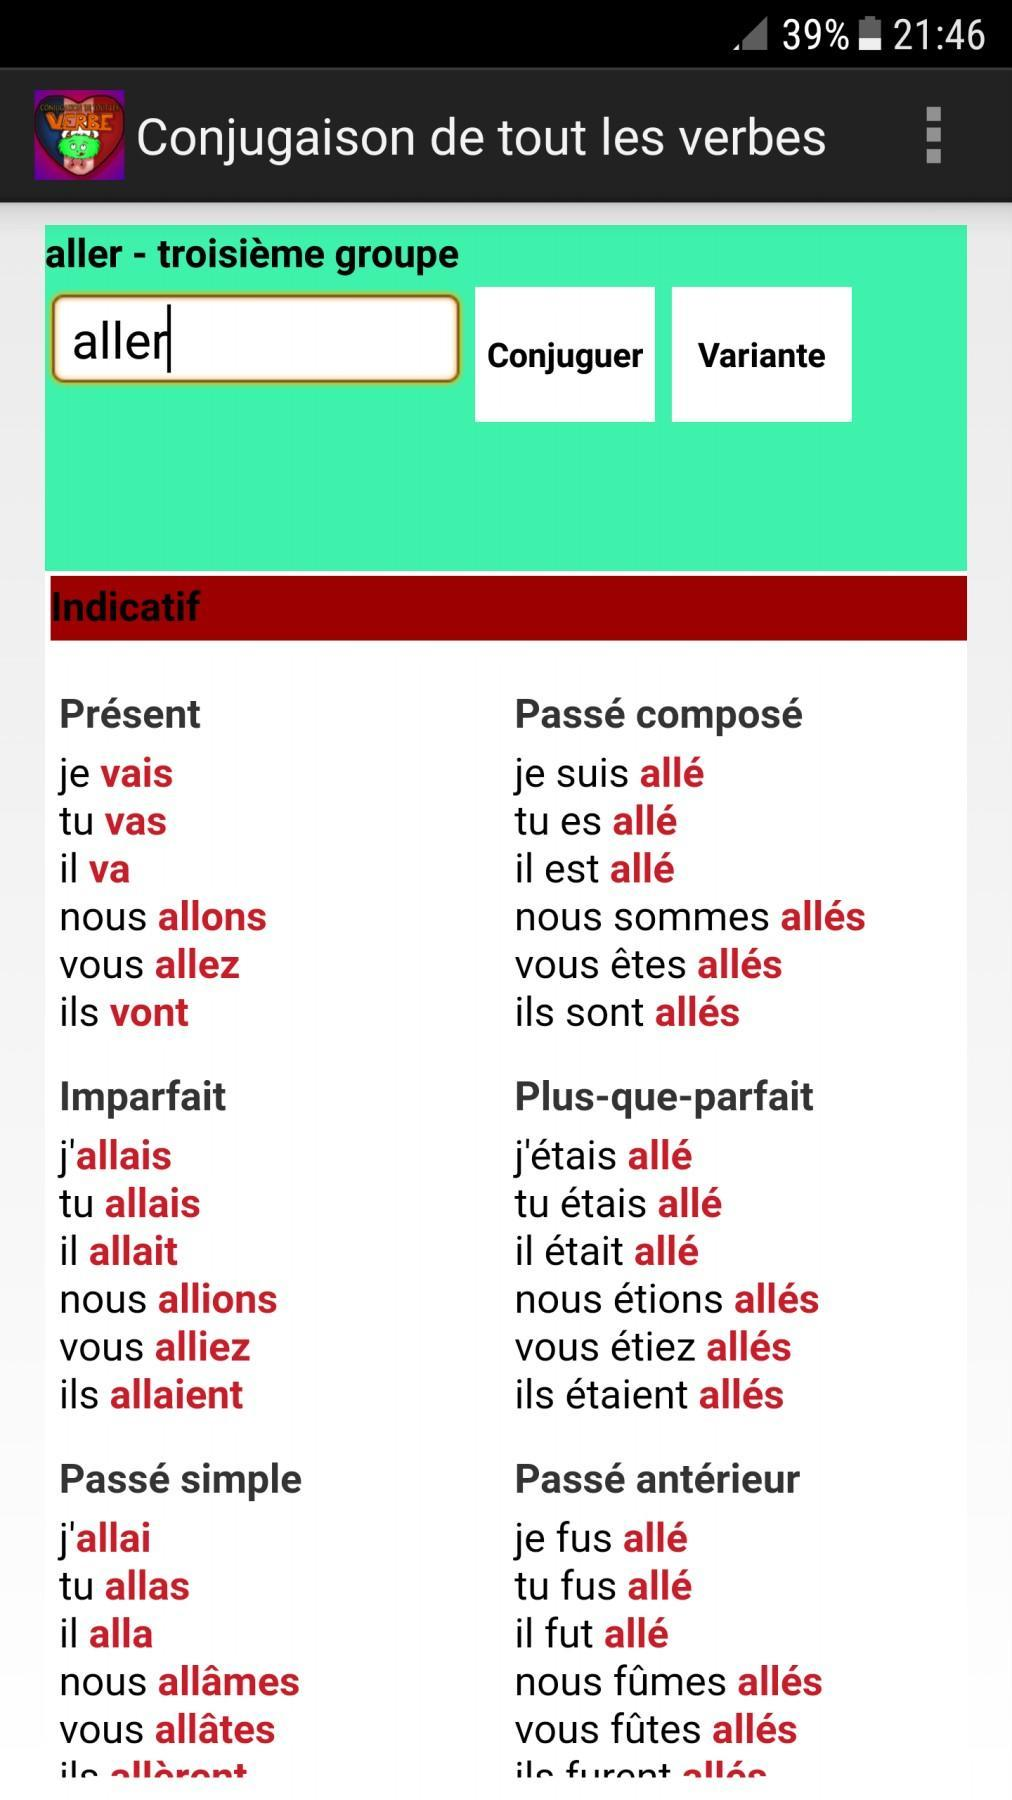 Conjugaison De Tout Les Verbes For Android Apk Download